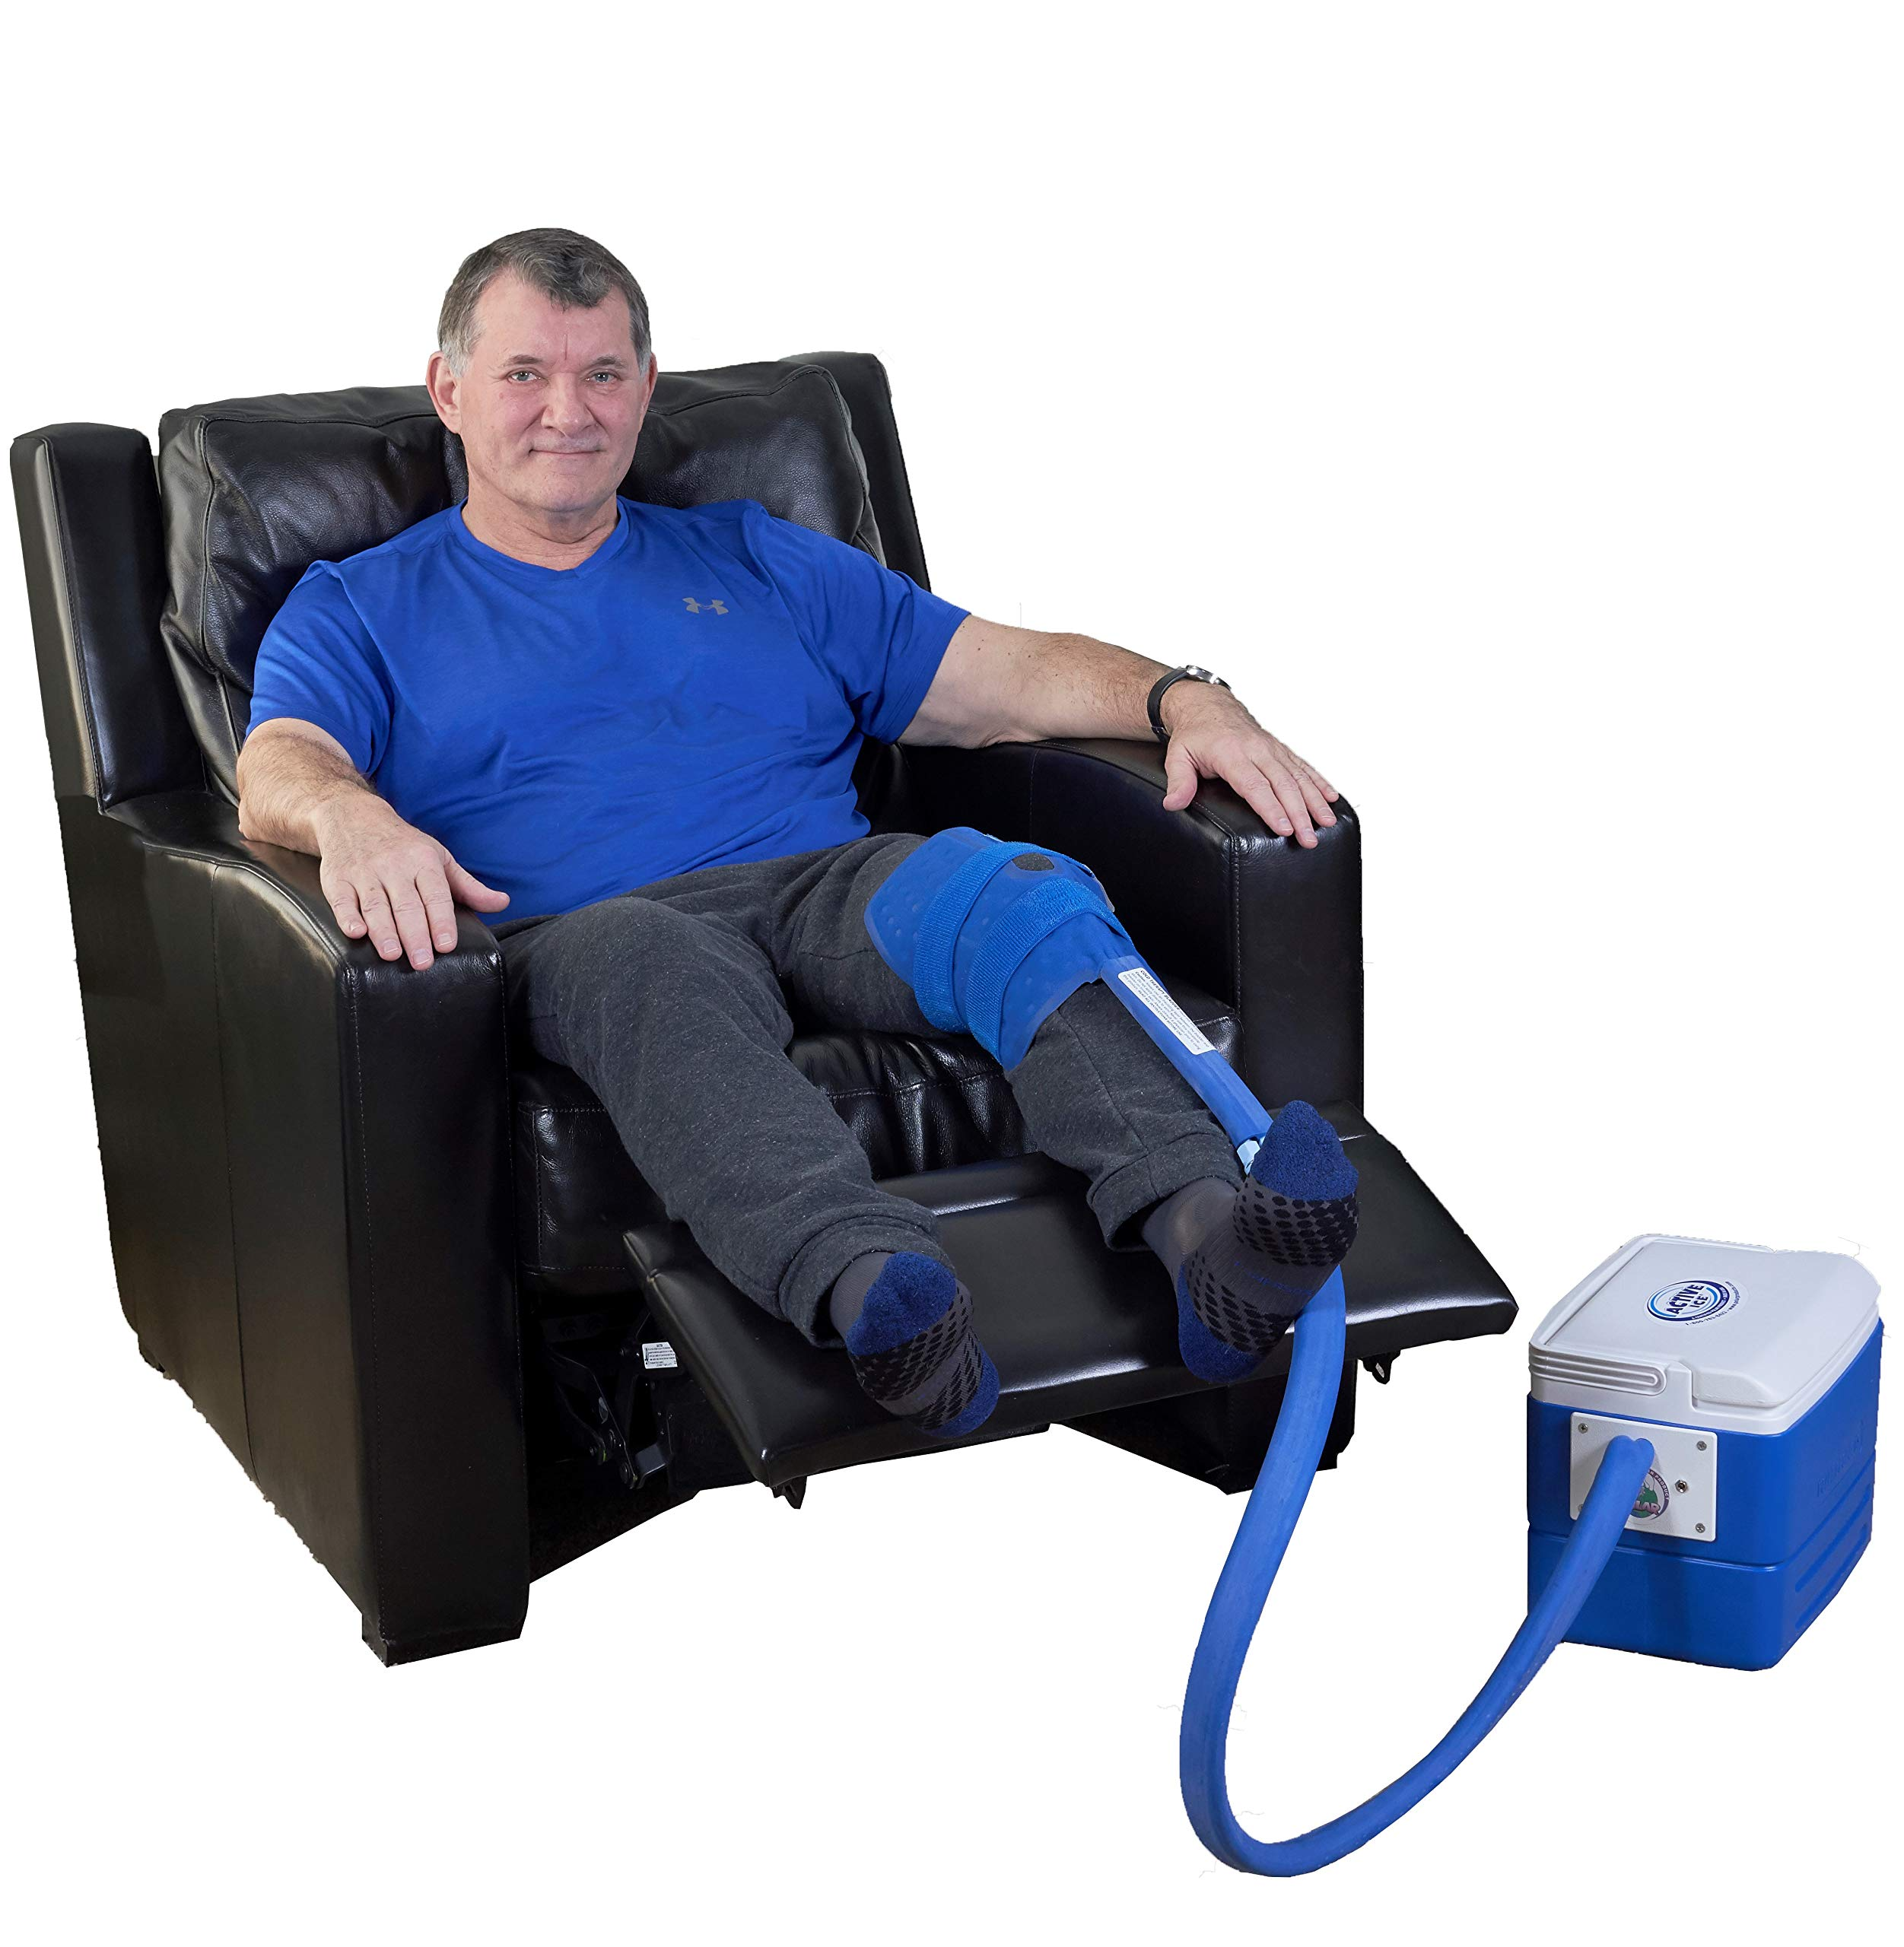 Polar Products Active Ice 3.0 Knee & Joint Cold Therapy System with Digital Timer Includes Knee Bladder, 9 Quart Cooler by Polar Products Inc.